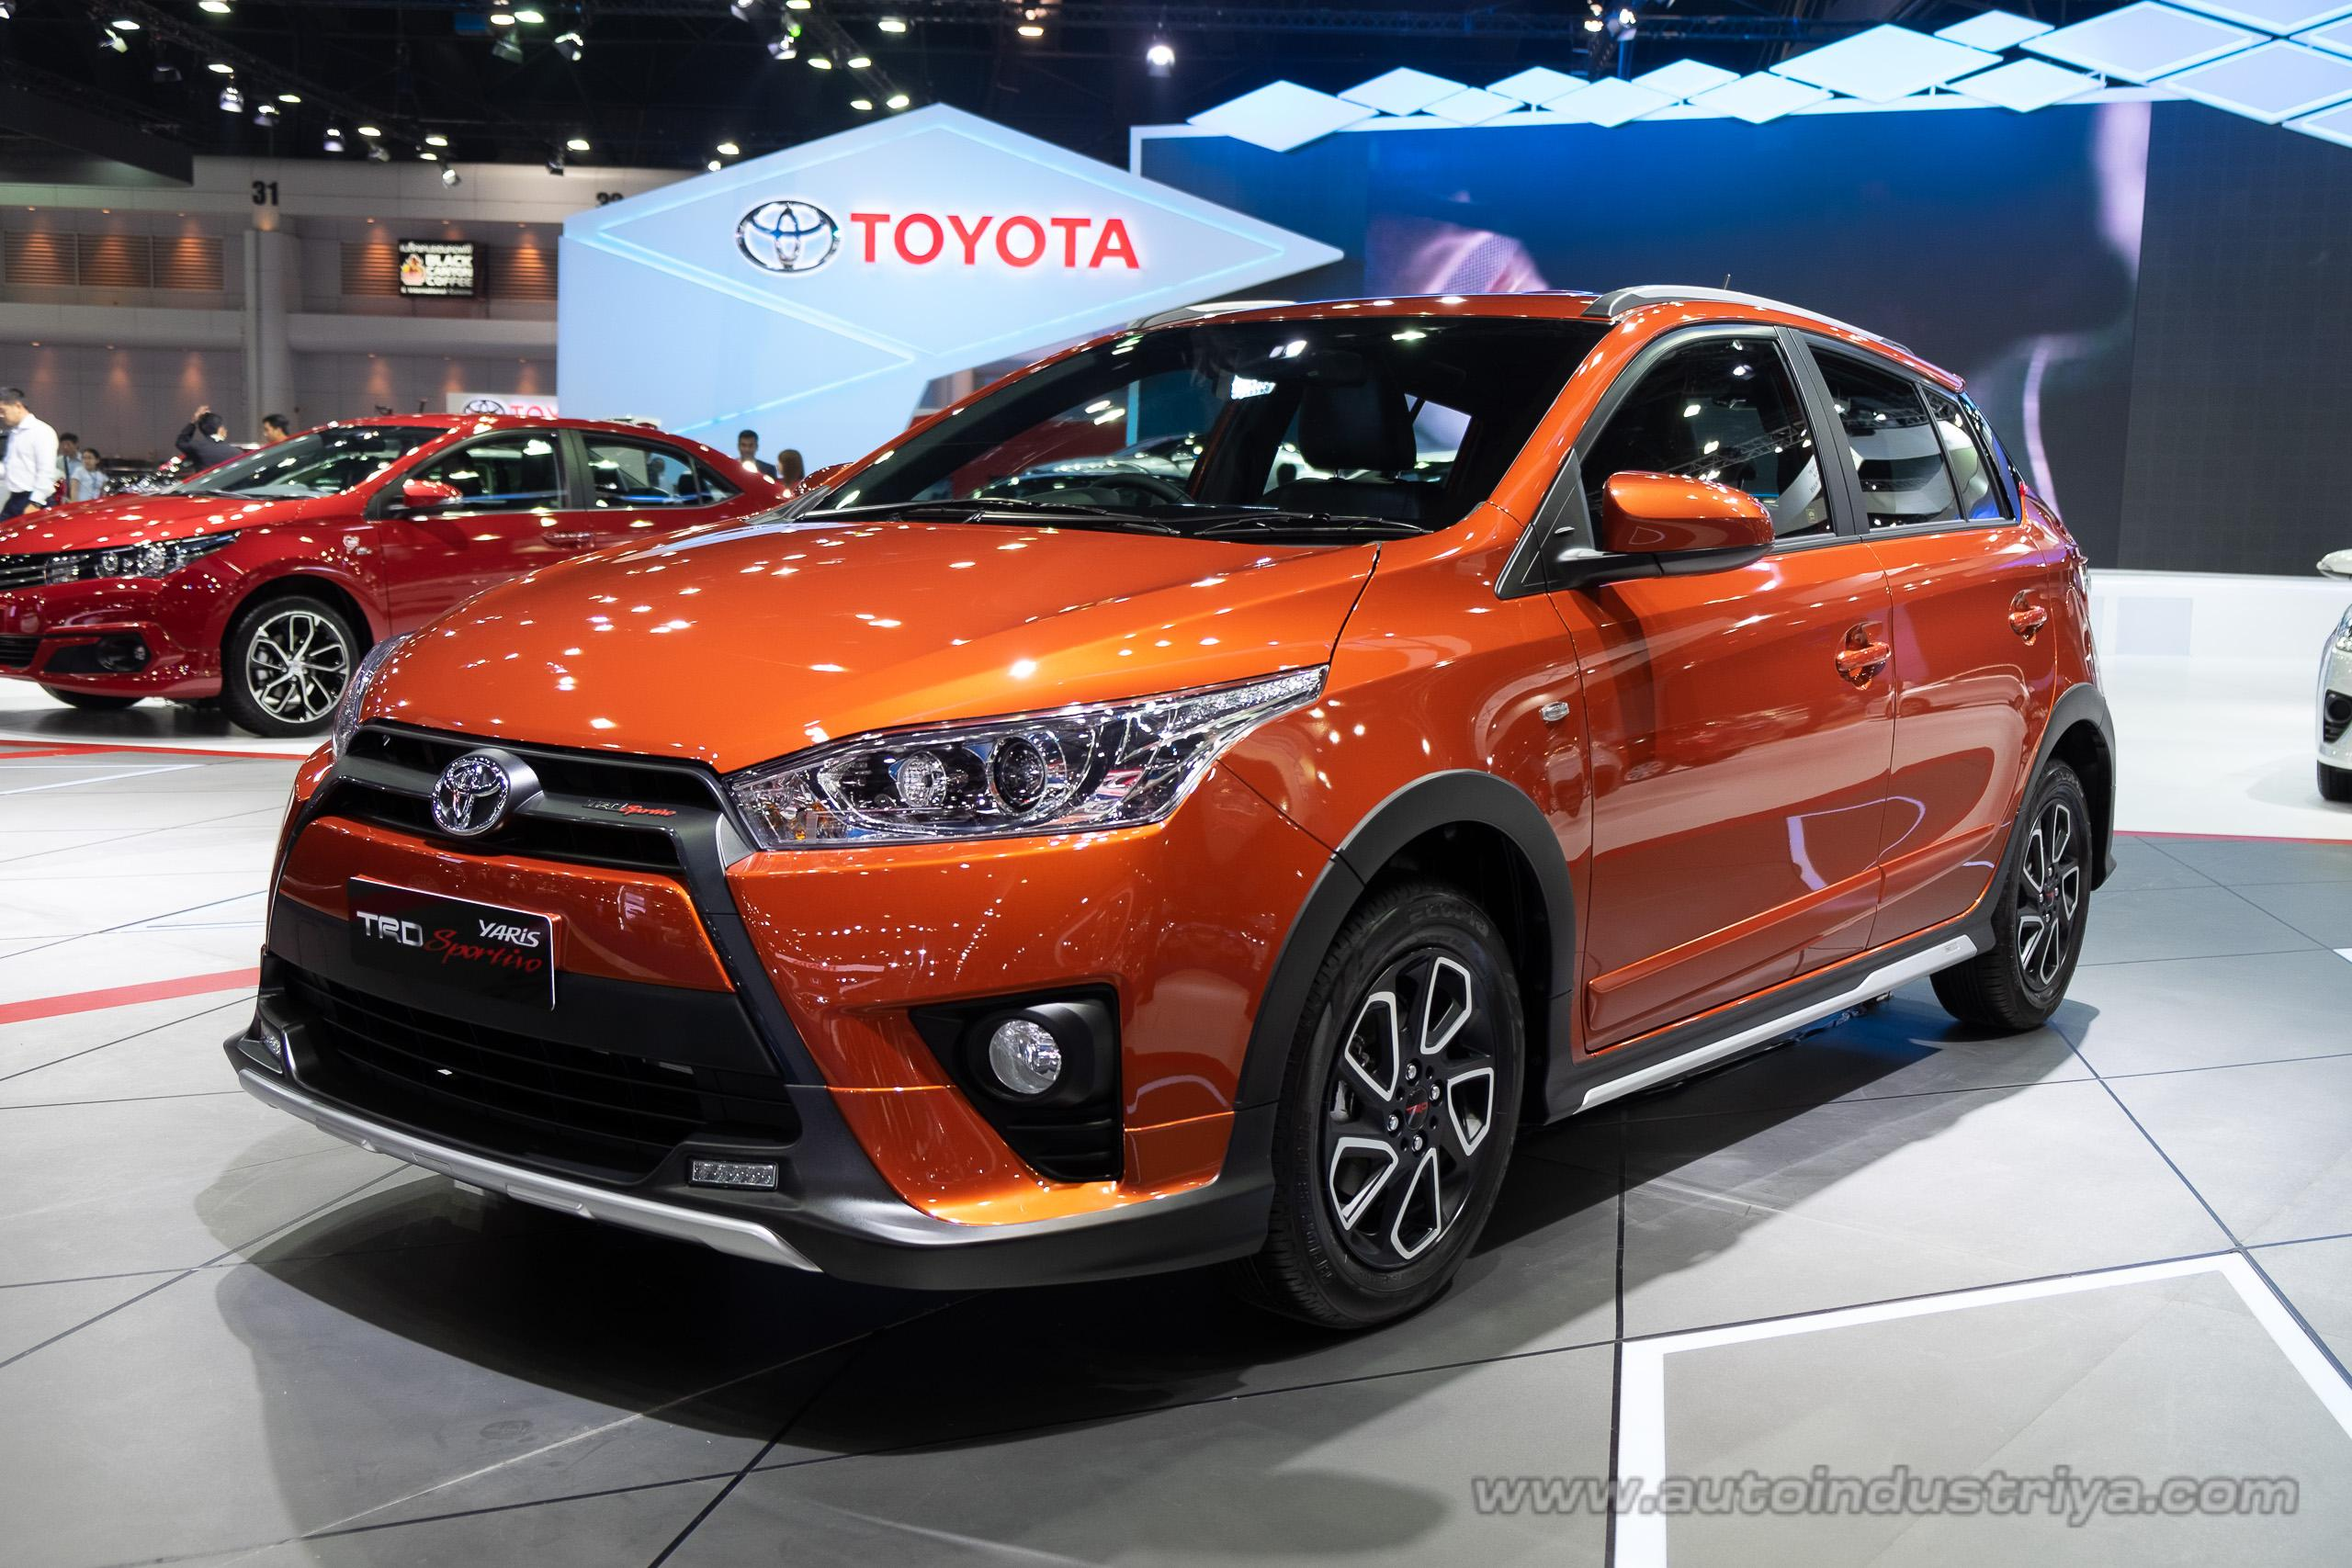 toyota yaris trd sportivo specs jok all new bangkok 2016 preview revealed auto news